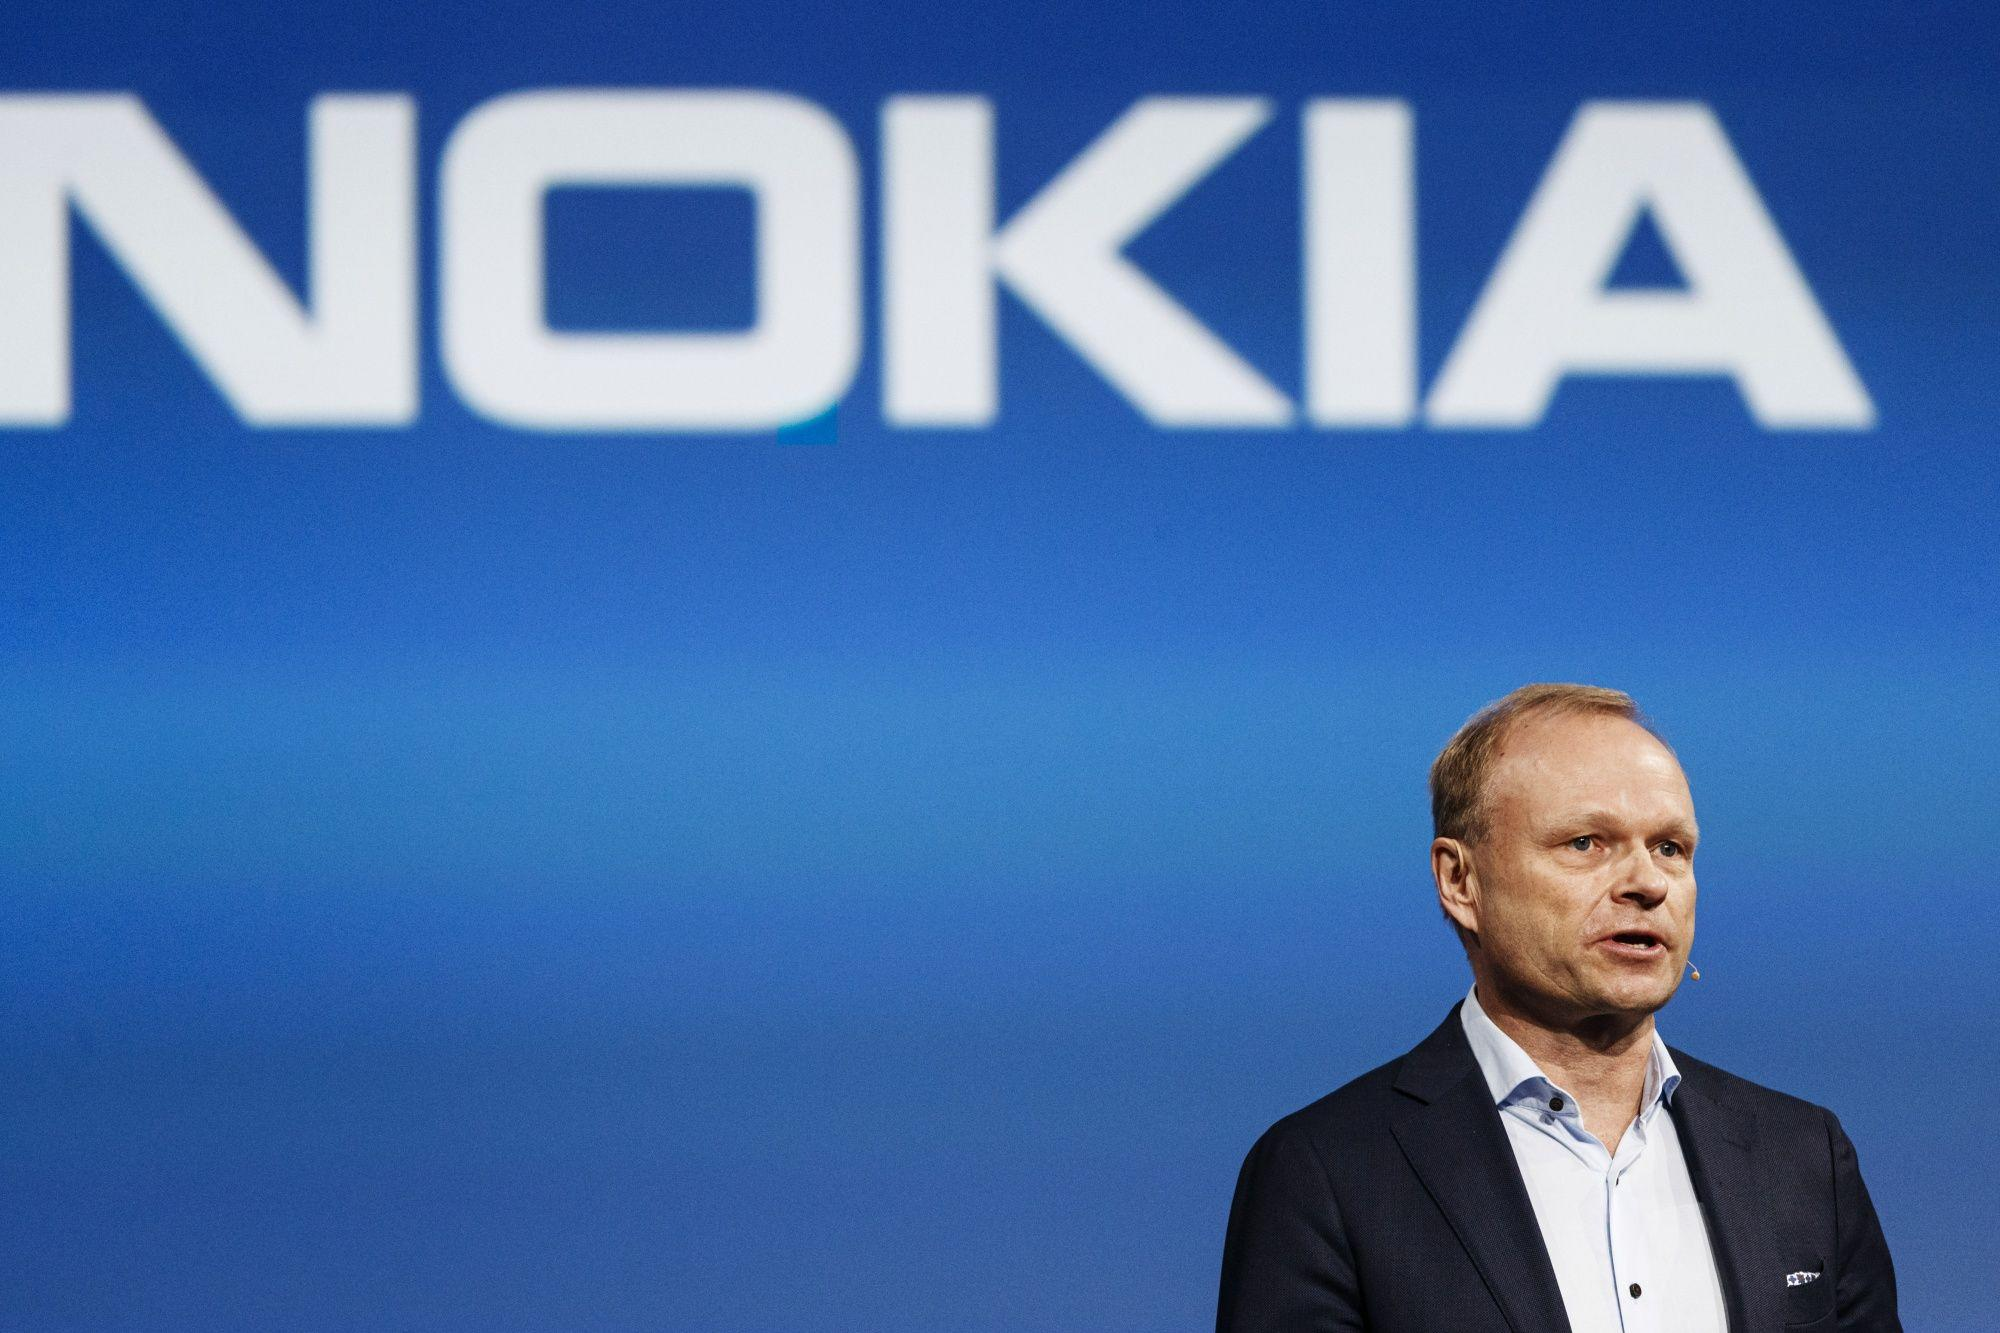 Nokia Raises Profit Guidance With 5G Comeback Plan on Track